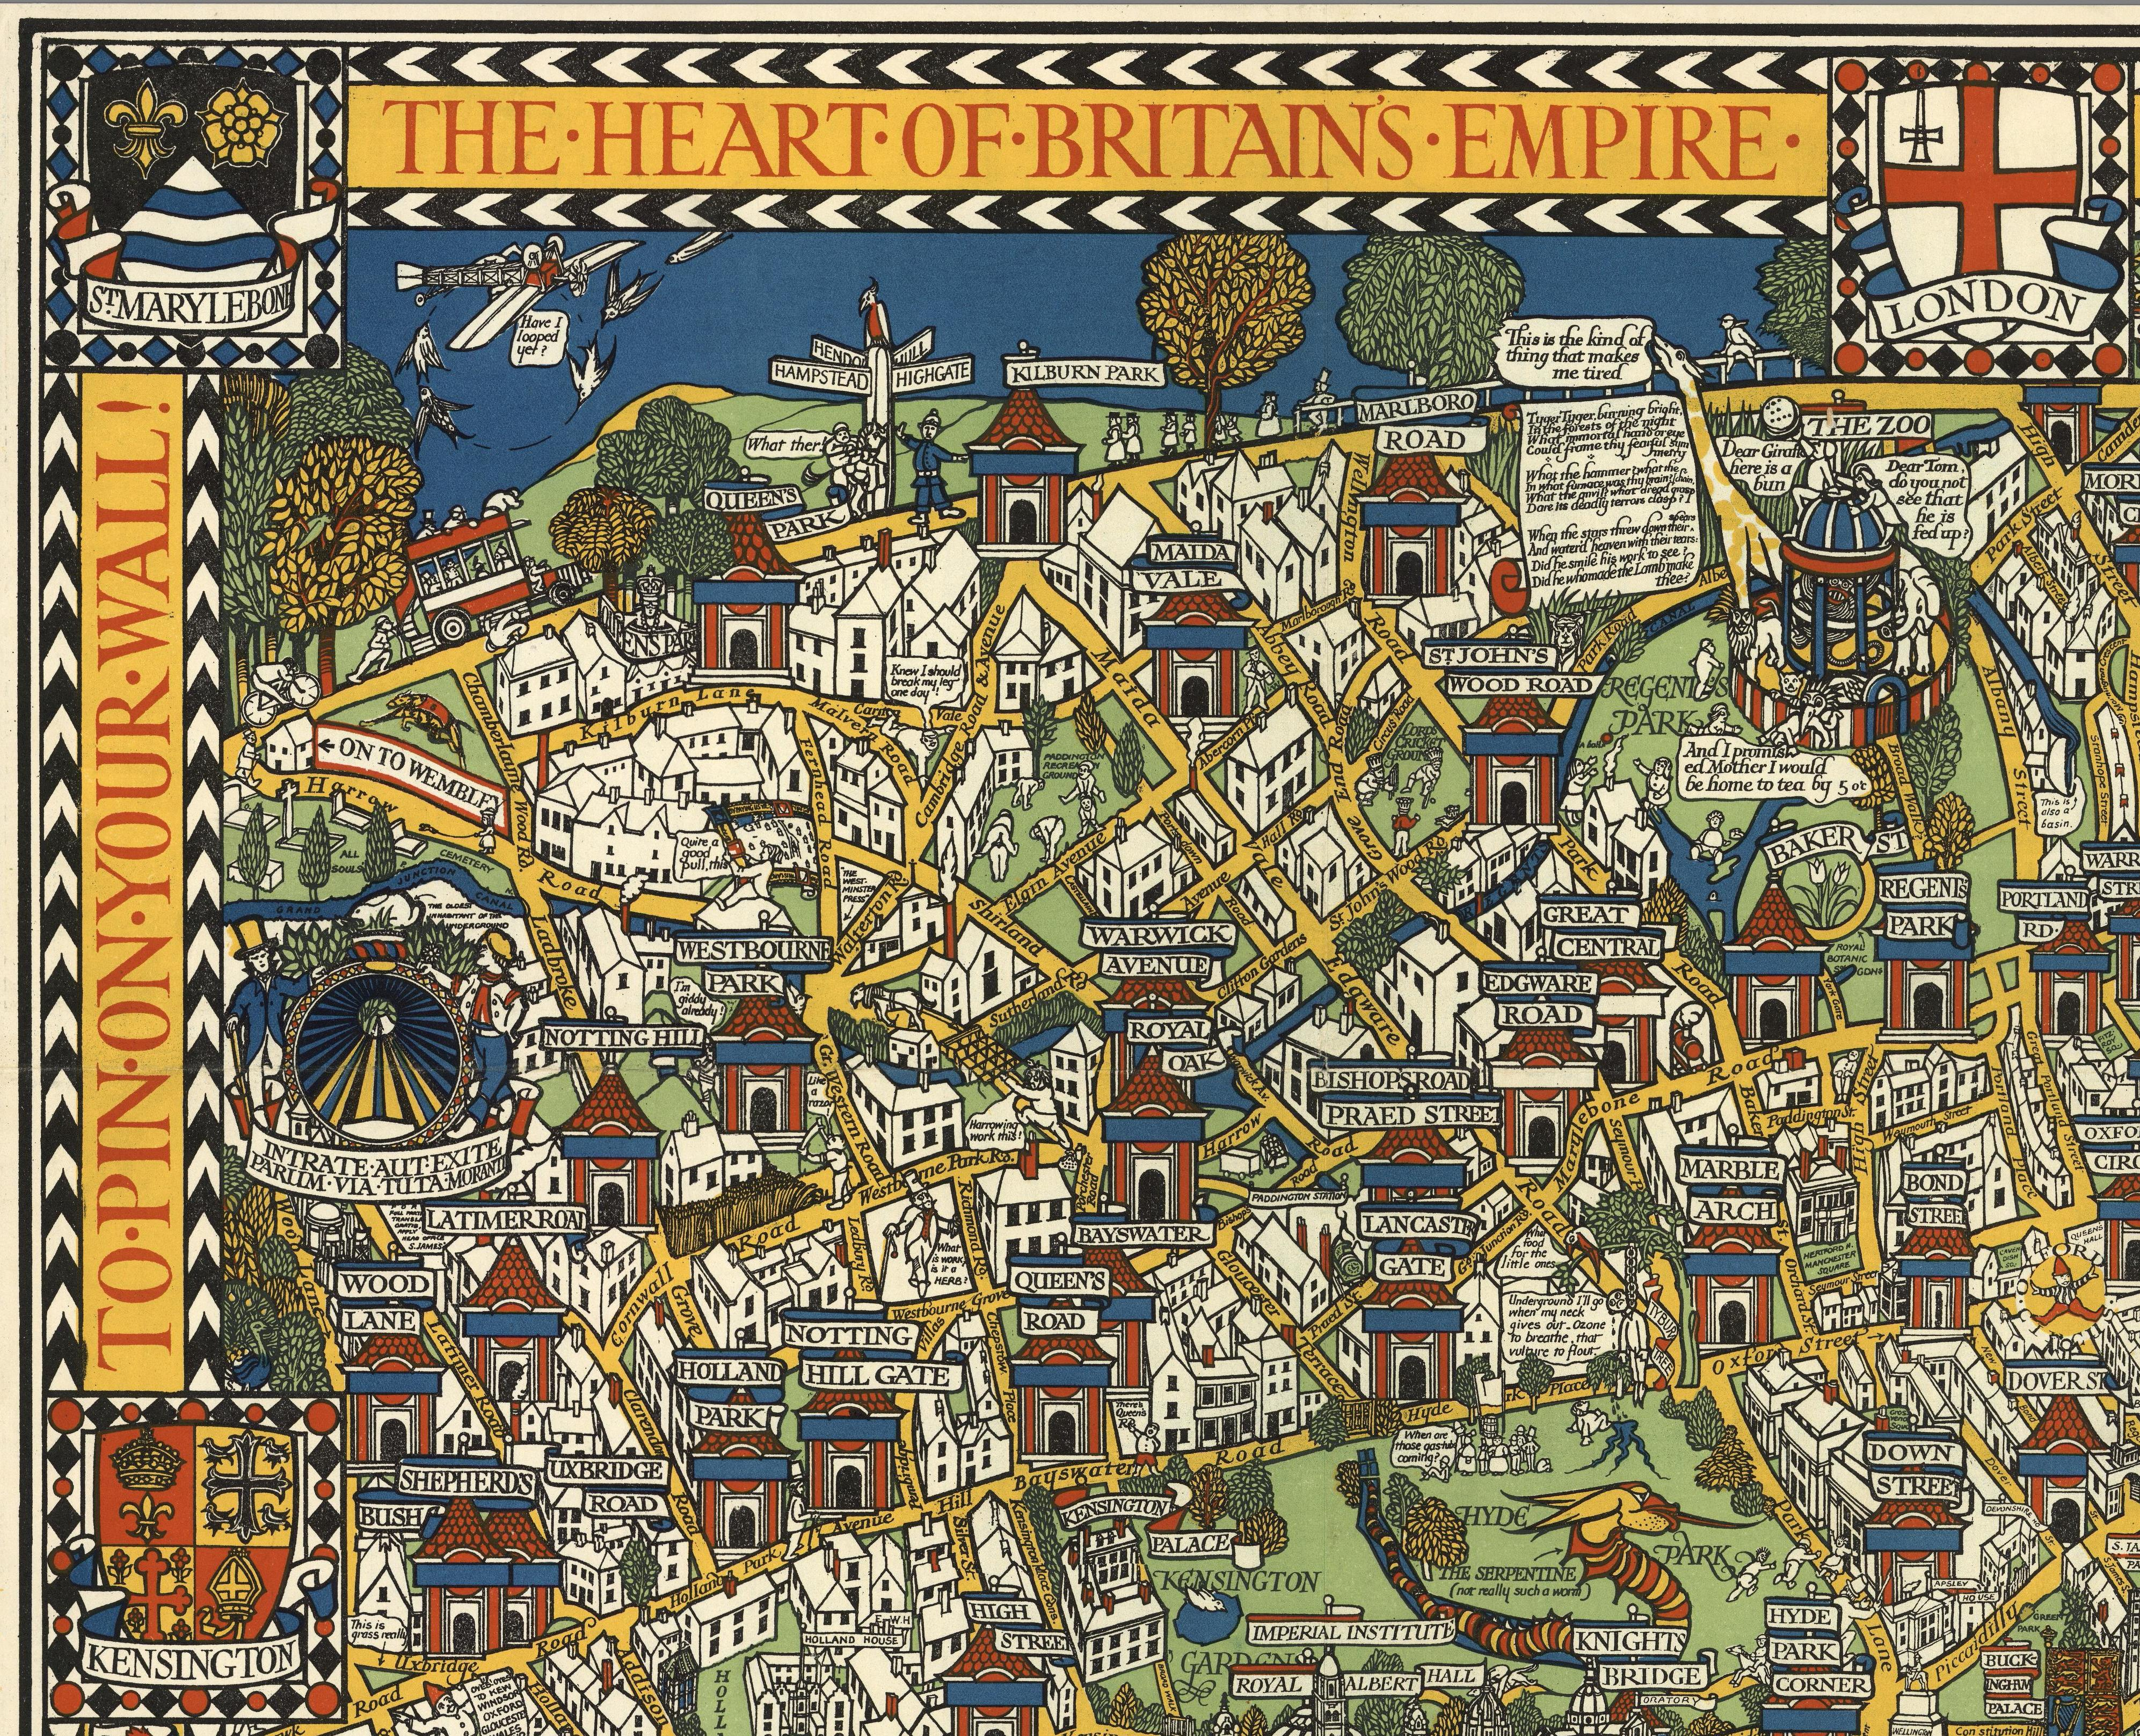 The Famous Wonderground Map of London Town